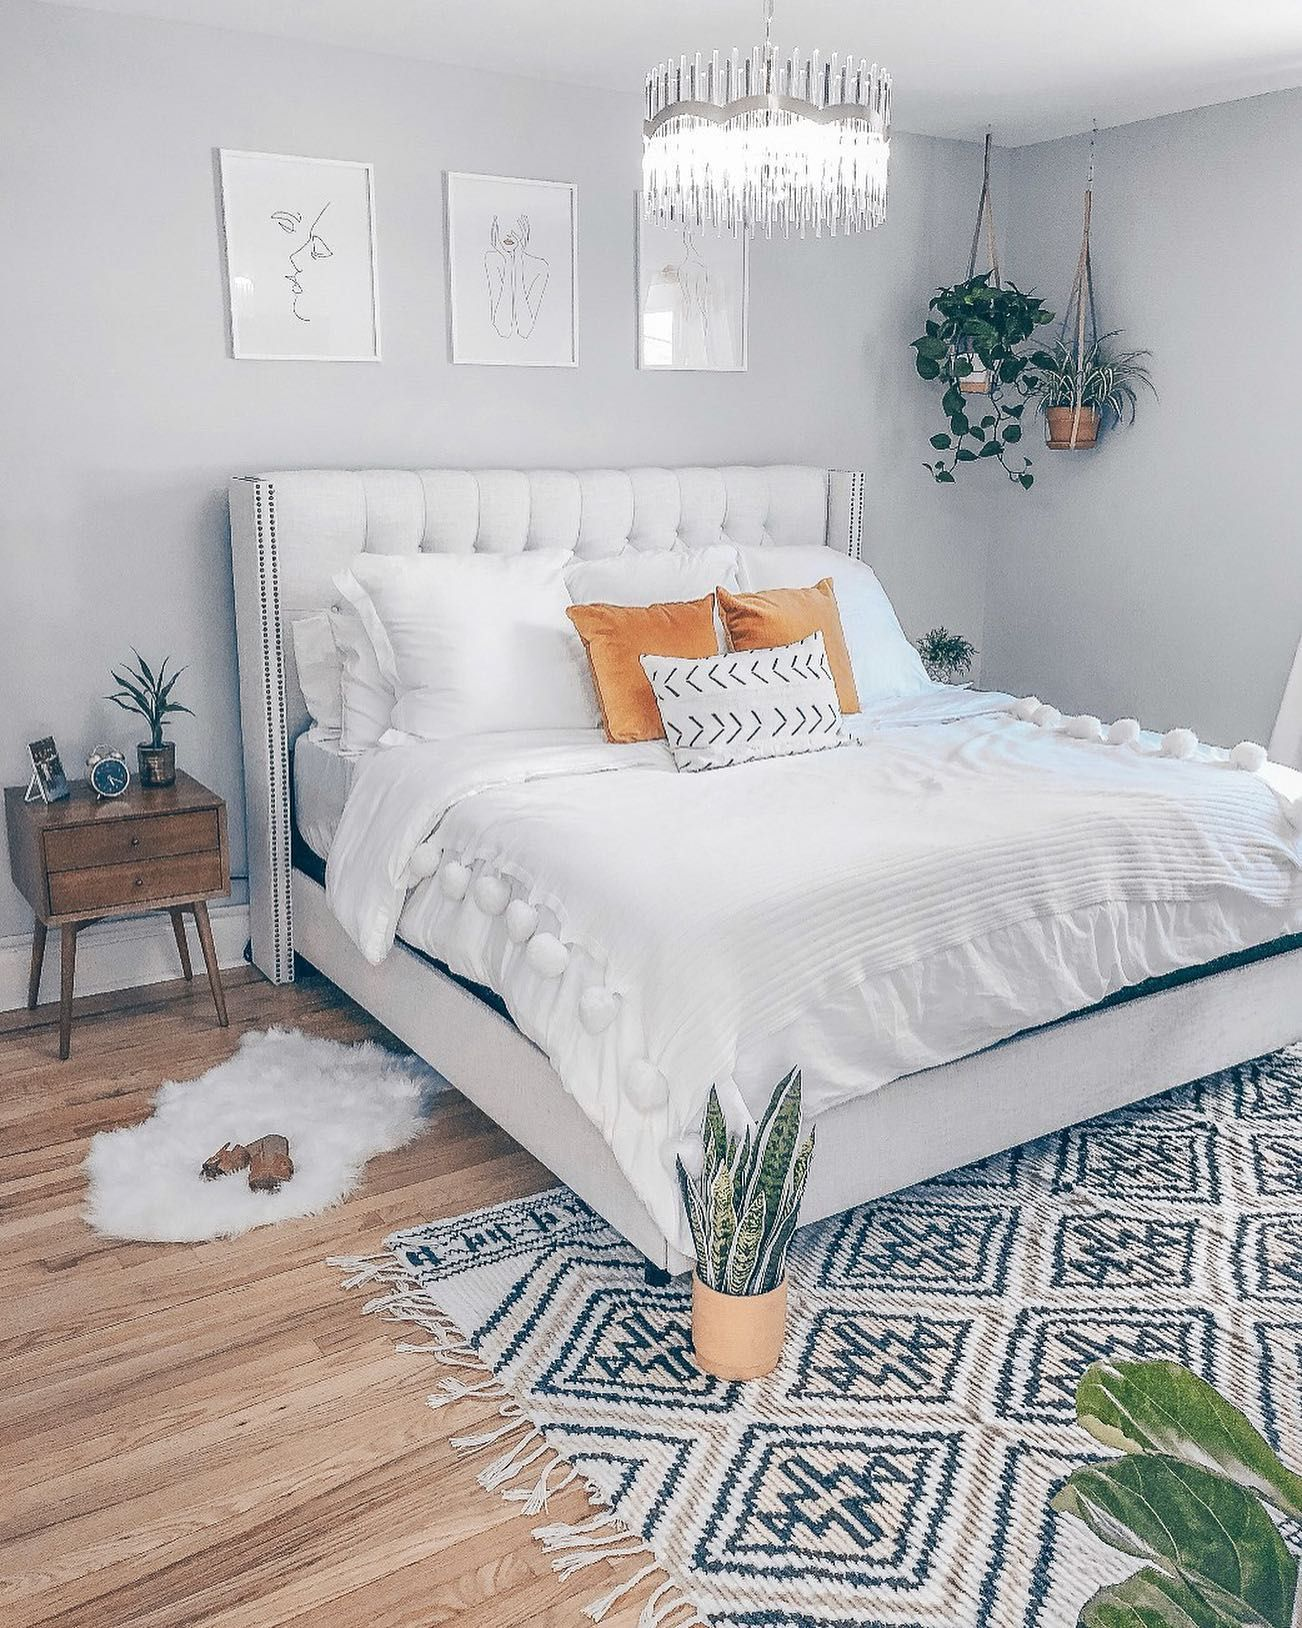 My Full Astoria Ny Interior Project Is Up On The Blog I Ve Worked So Hard On This The Past 4 Months A In 2020 Chic Bedroom Boho Chic Bedroom Small Bedroom